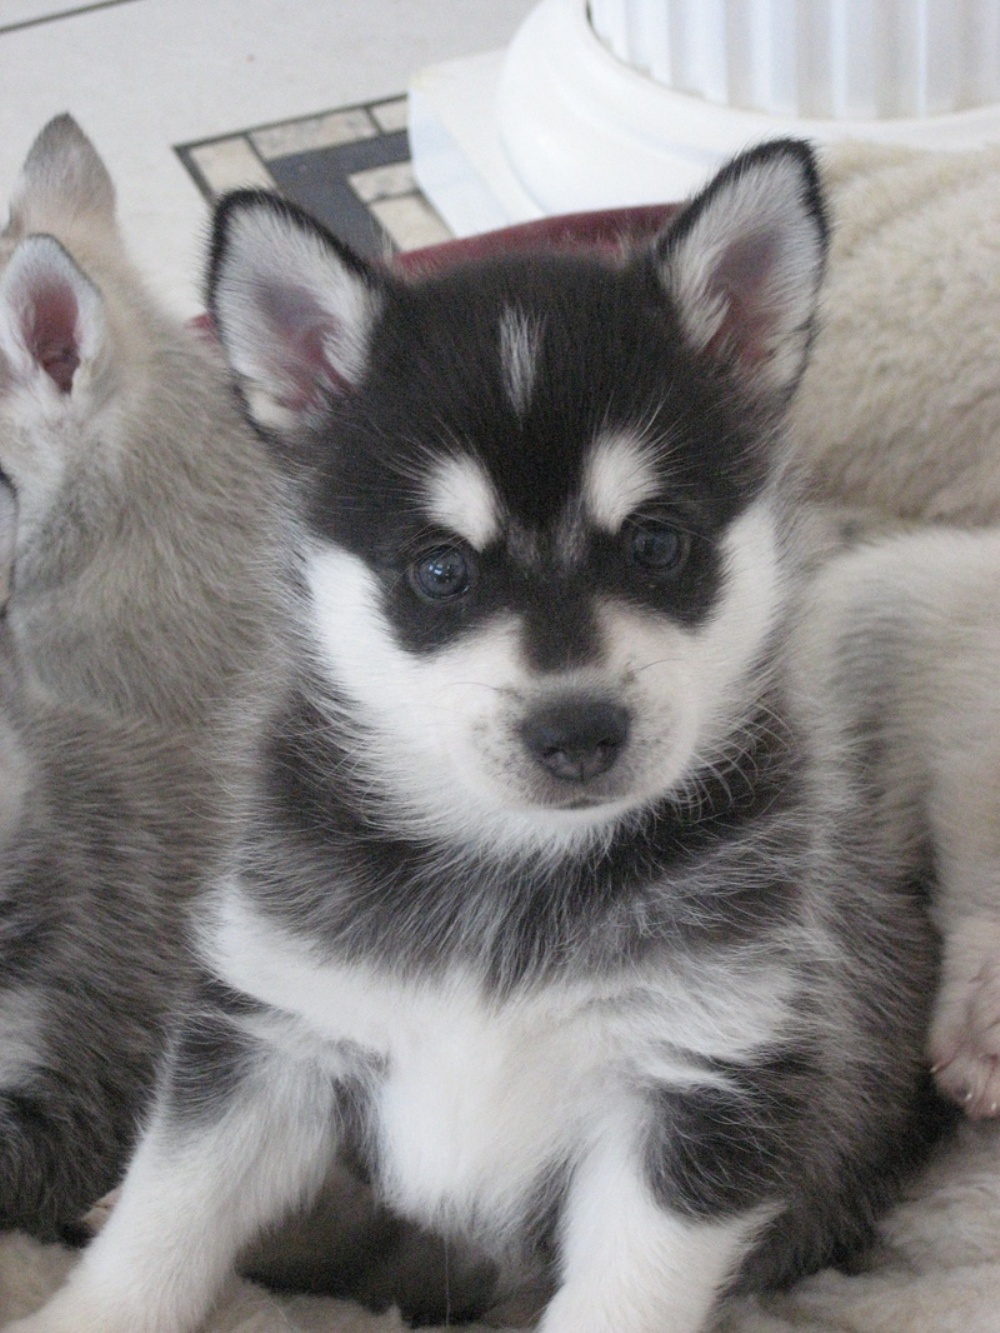 Young Alaskan Klee Kai wallpaper